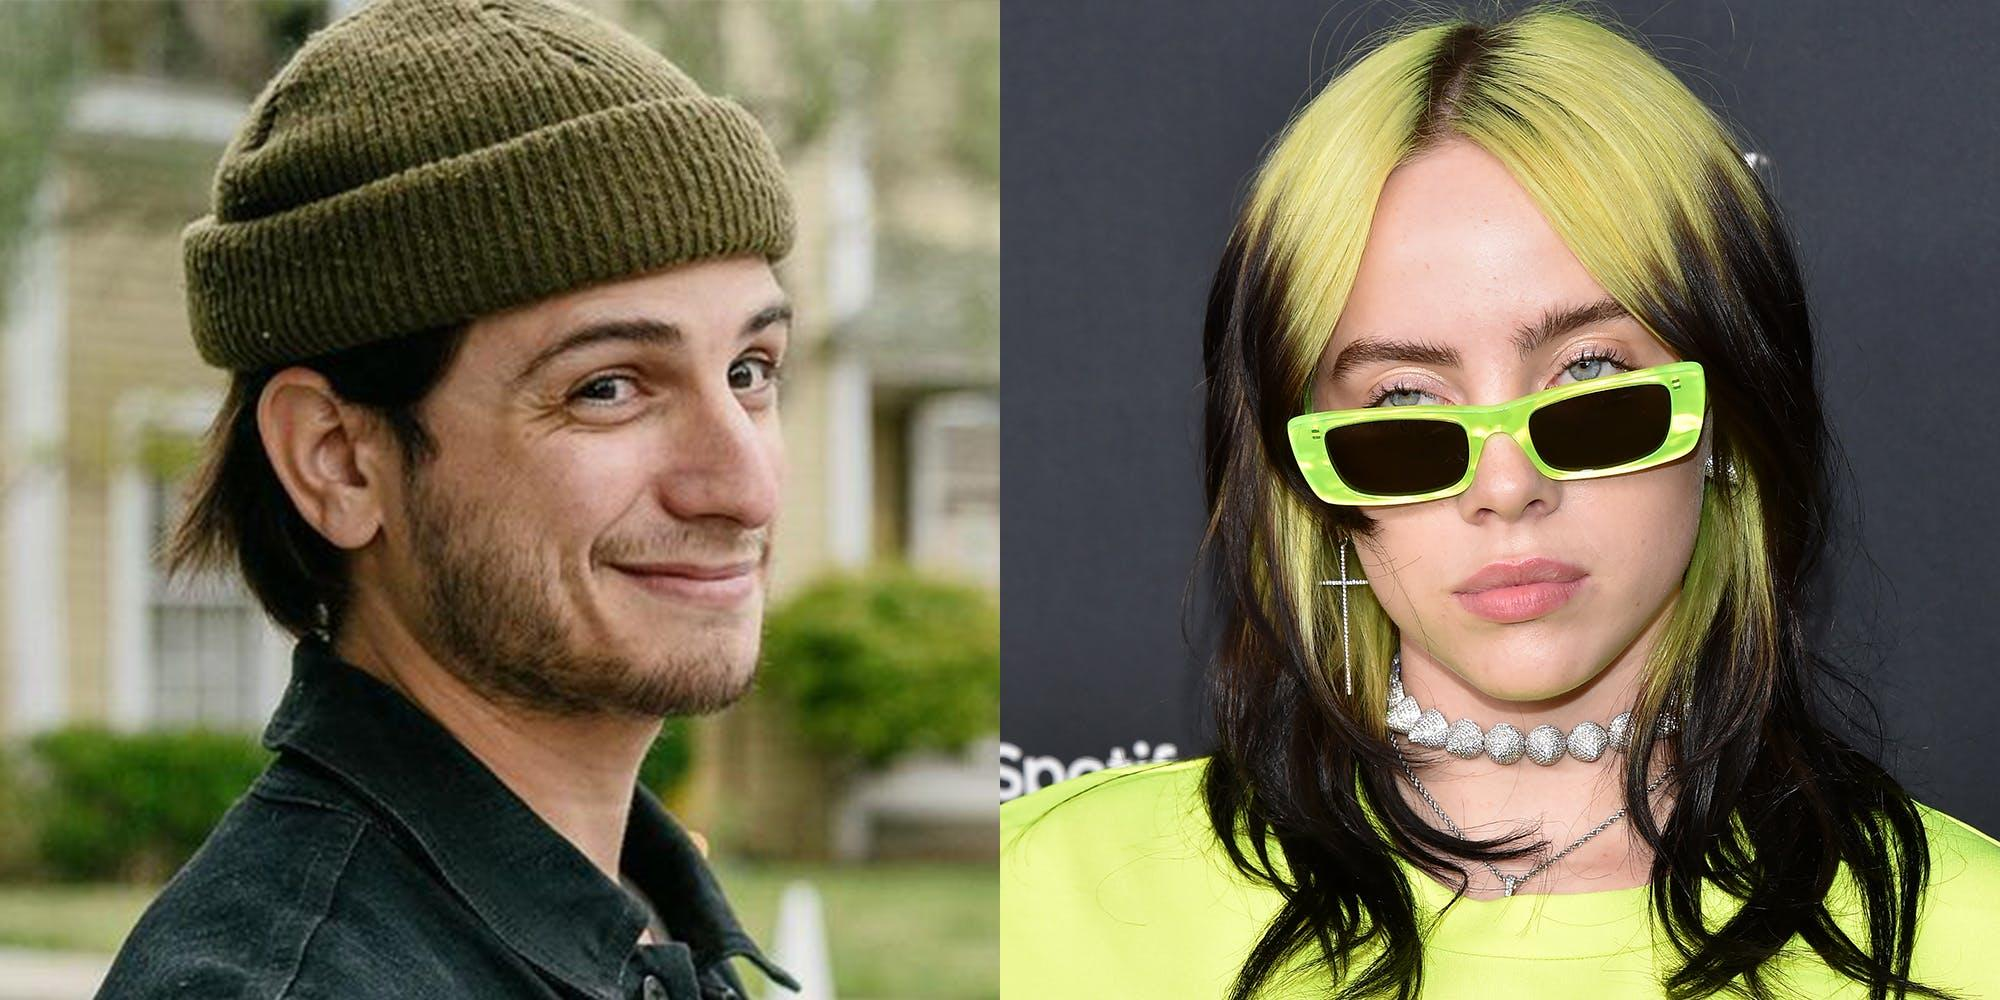 Billie Eilish's Alleged New BF Matthew Tyler Vorce Apologizes For Old Racist And Homophobic Posts